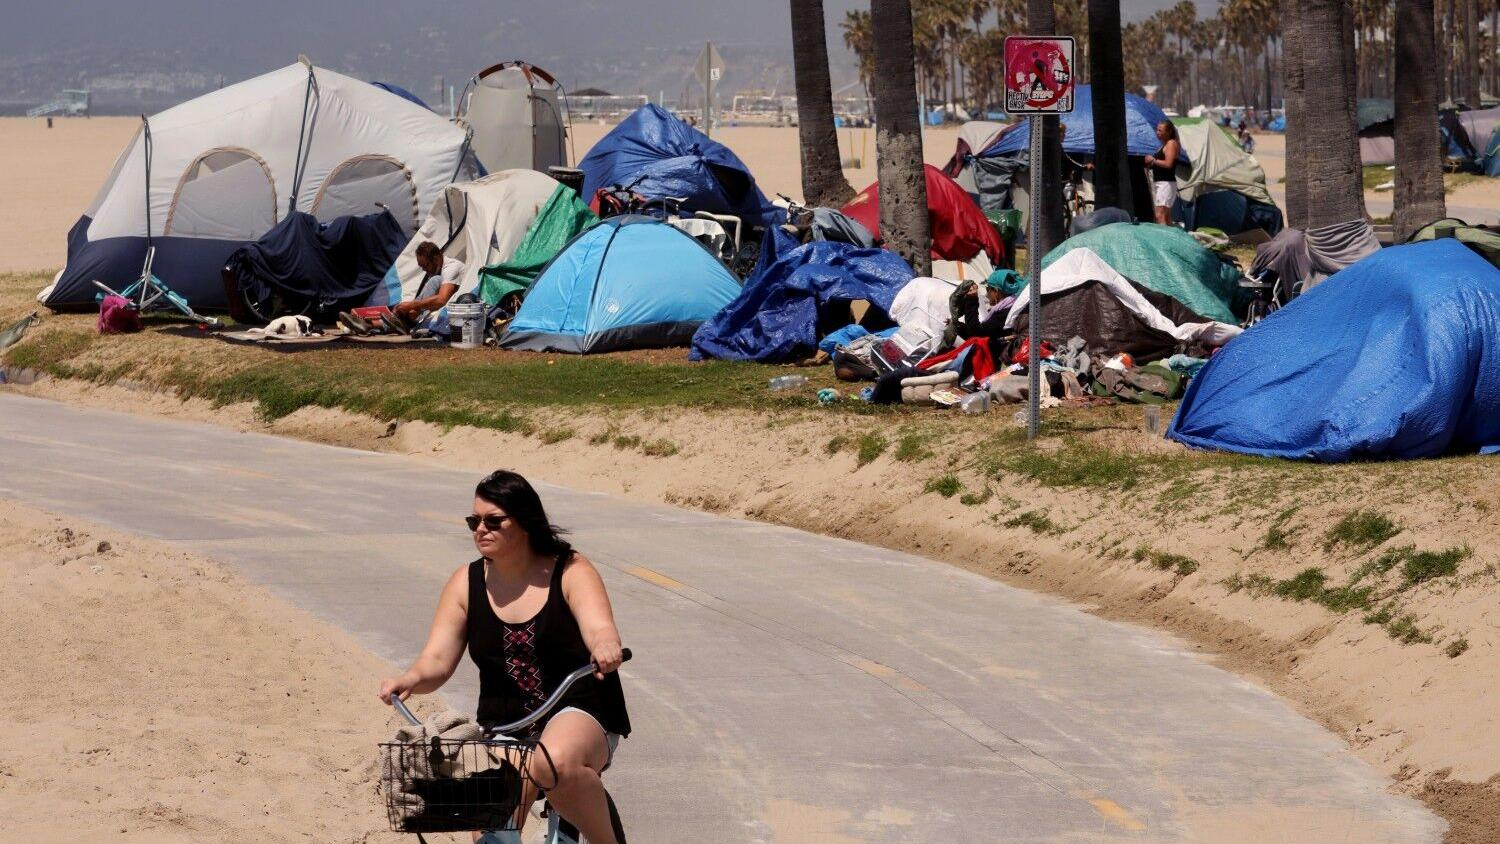 California residents leery of beach apartments for the homeless, by Robin Abcarian